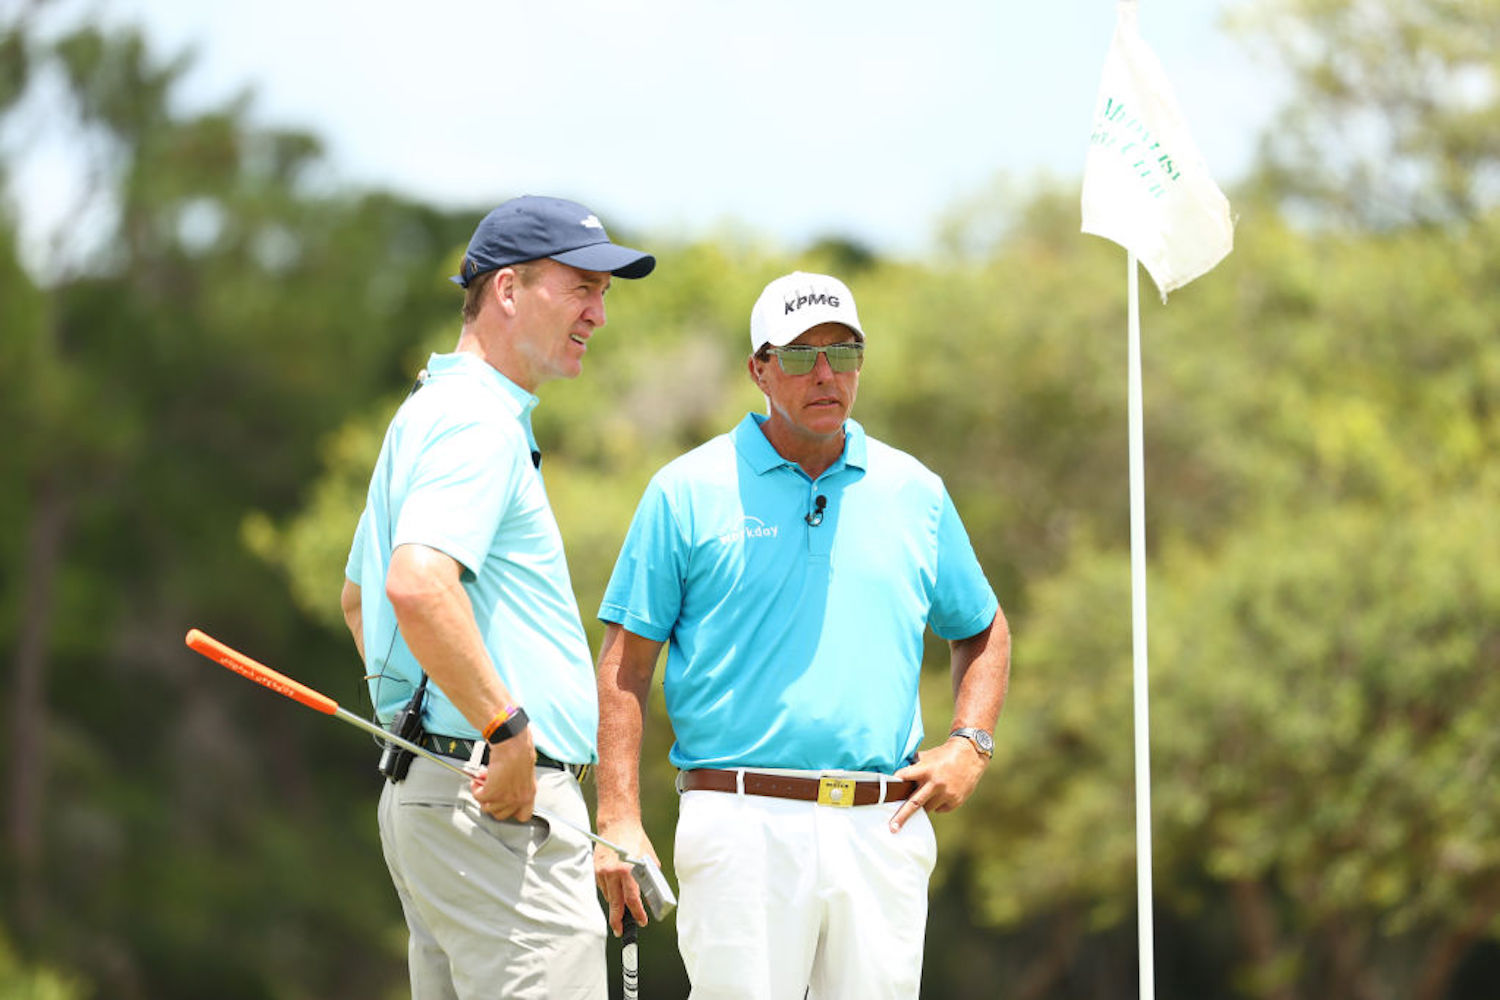 The Match 3: Who Has the Highest Net Worth Between Steph Curry, Peyton Manning, Phil Mickelson, and Charles Barkley?